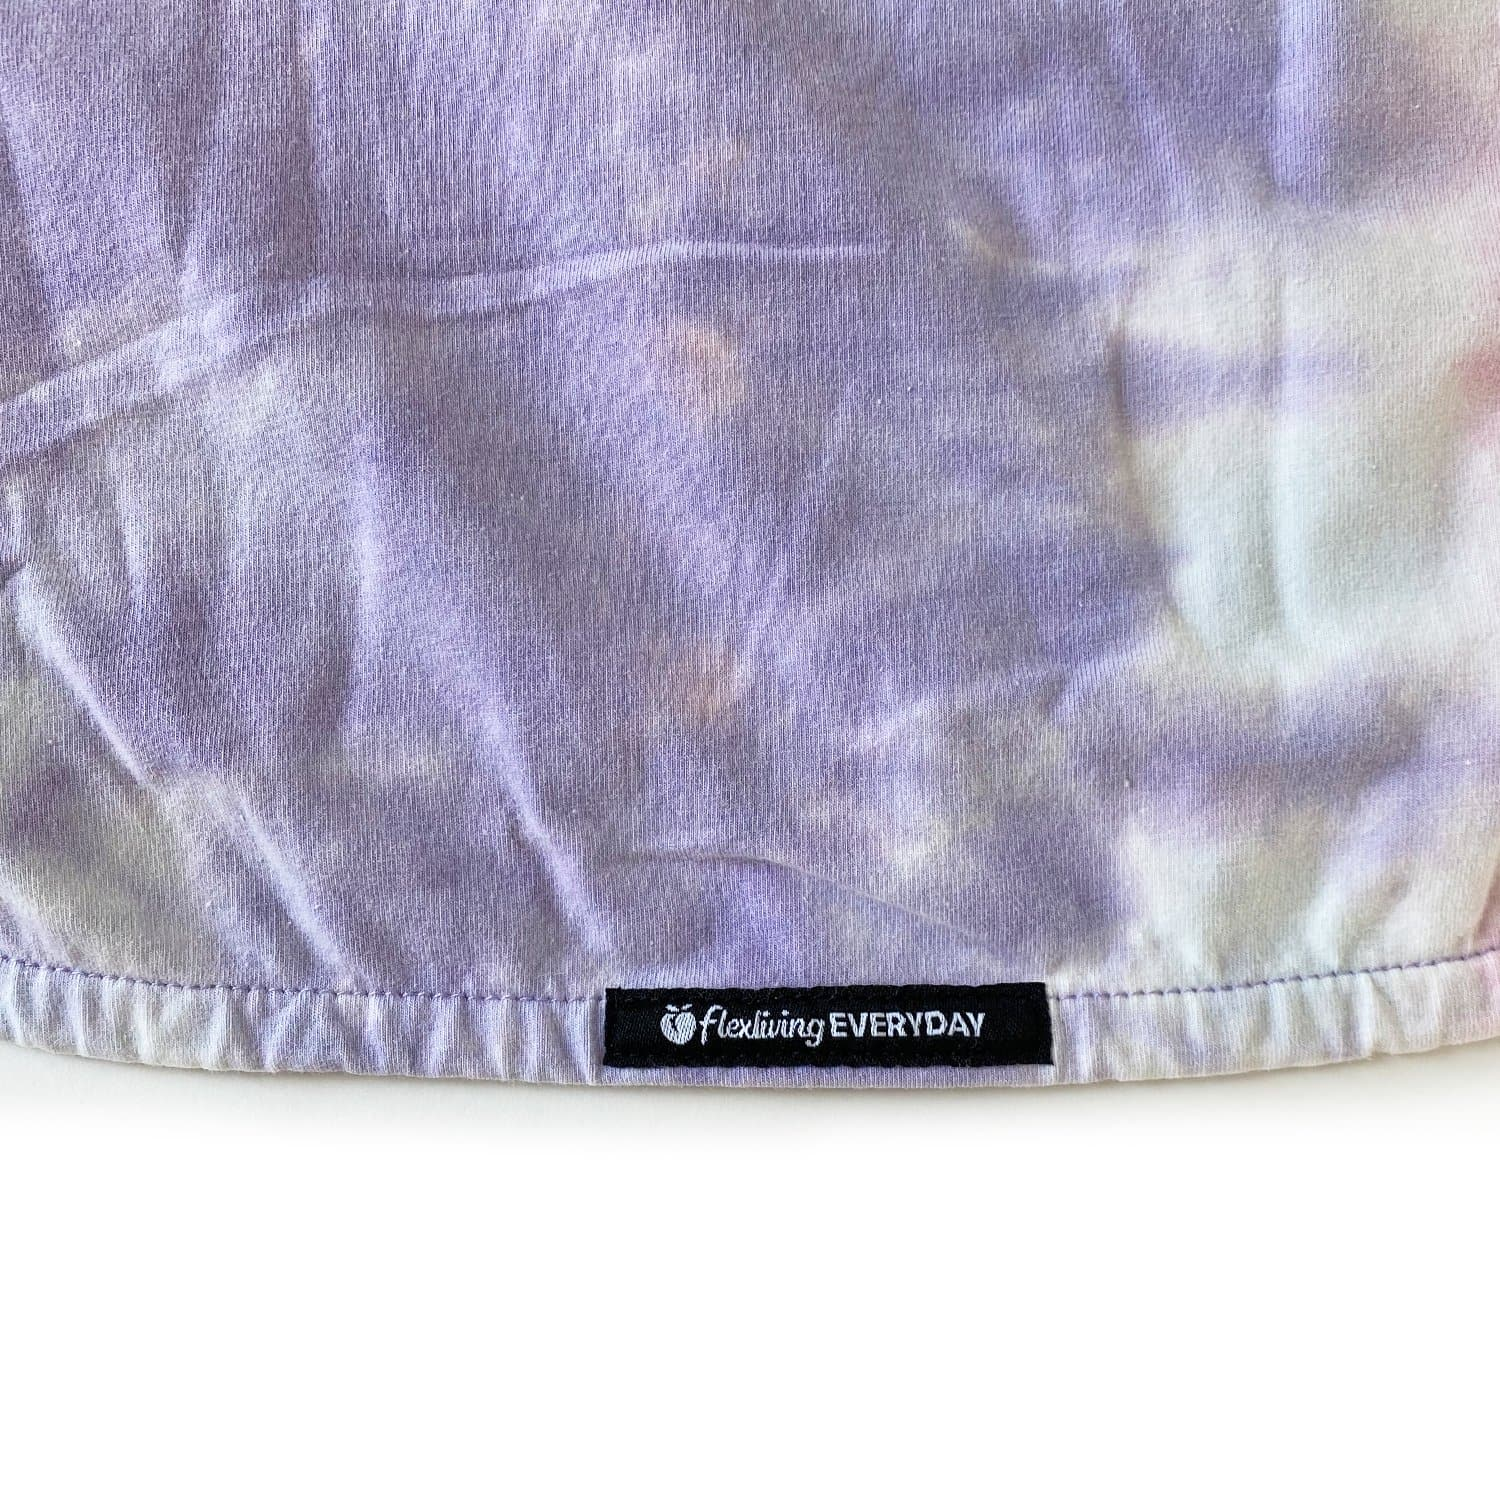 Men's EVERYDAY Acid Wash Tee - Tie Dye Purple